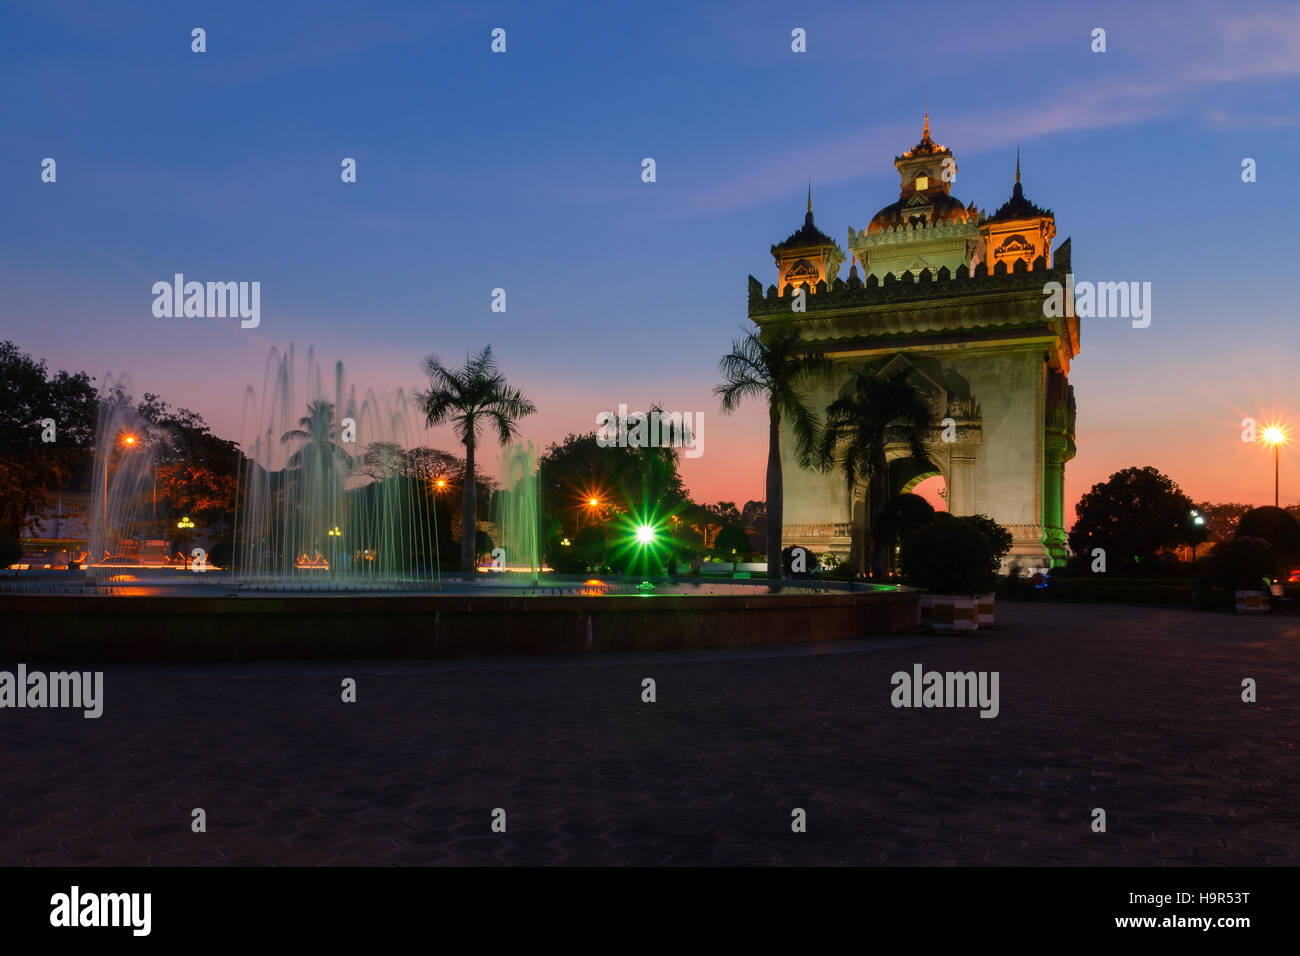 Patuxai arch landmark of Vientiane, Laos at twilight time. - Stock Image